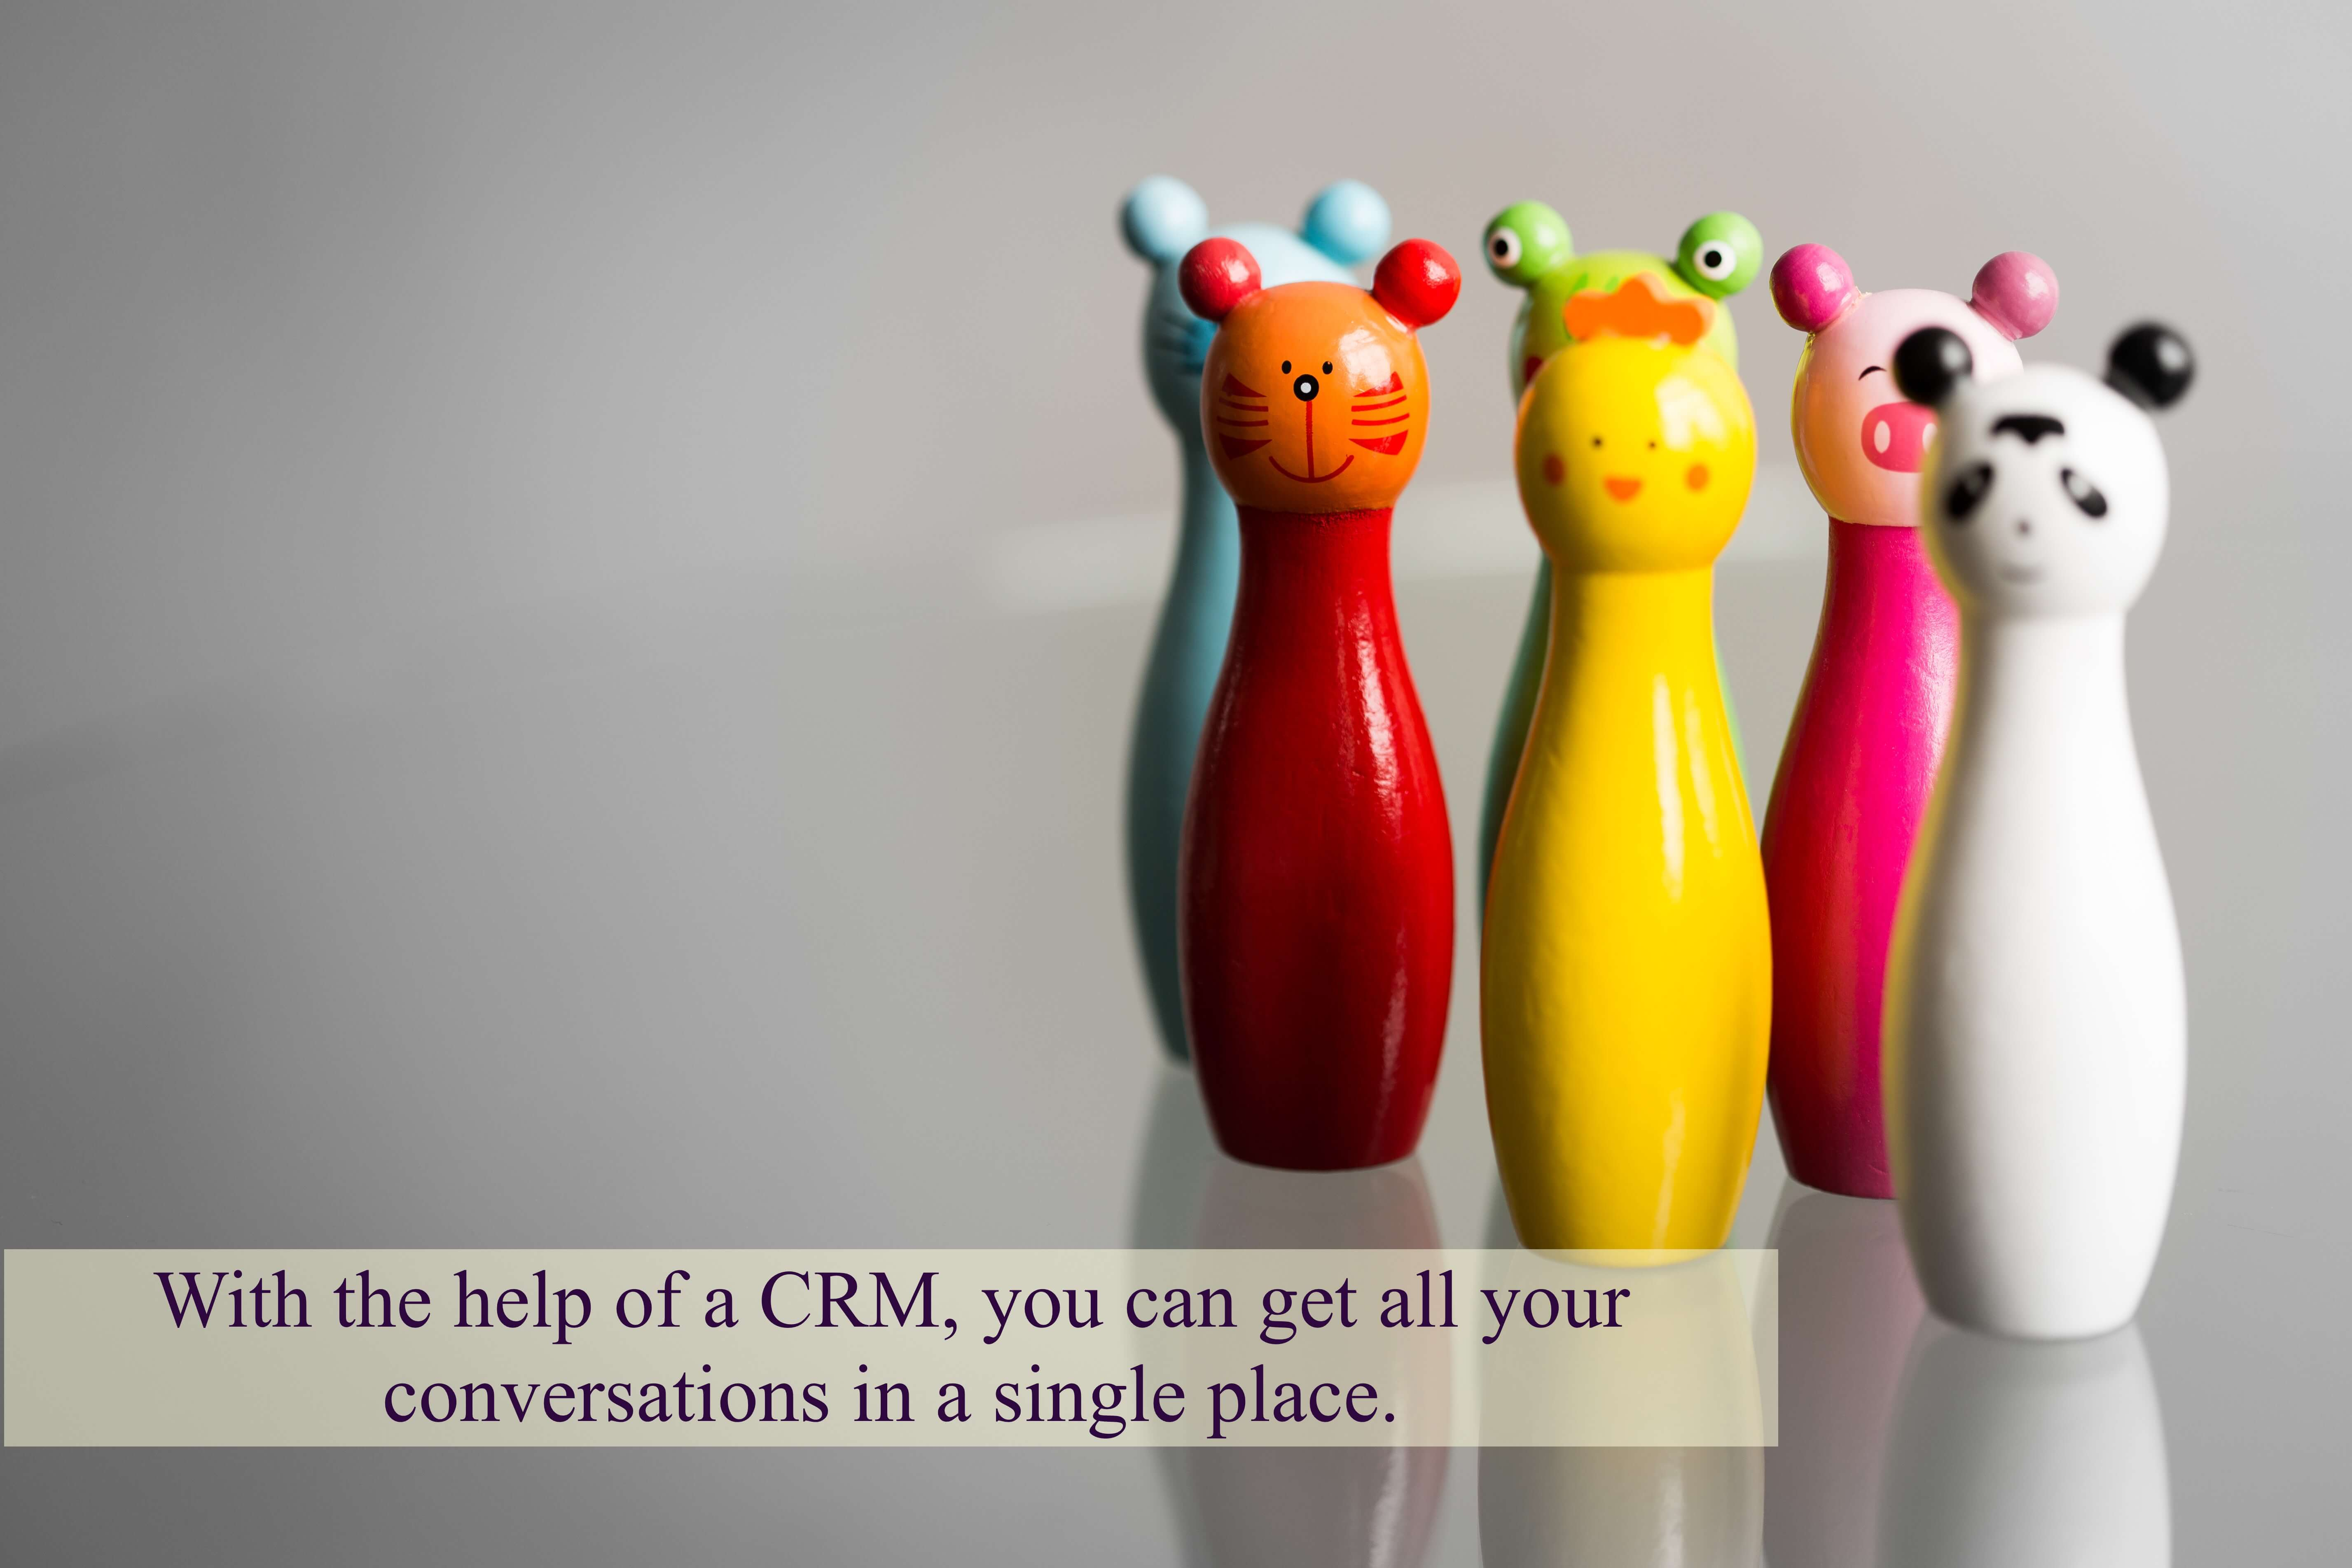 With the help of a CRM, you can get all your conversations in a single place.